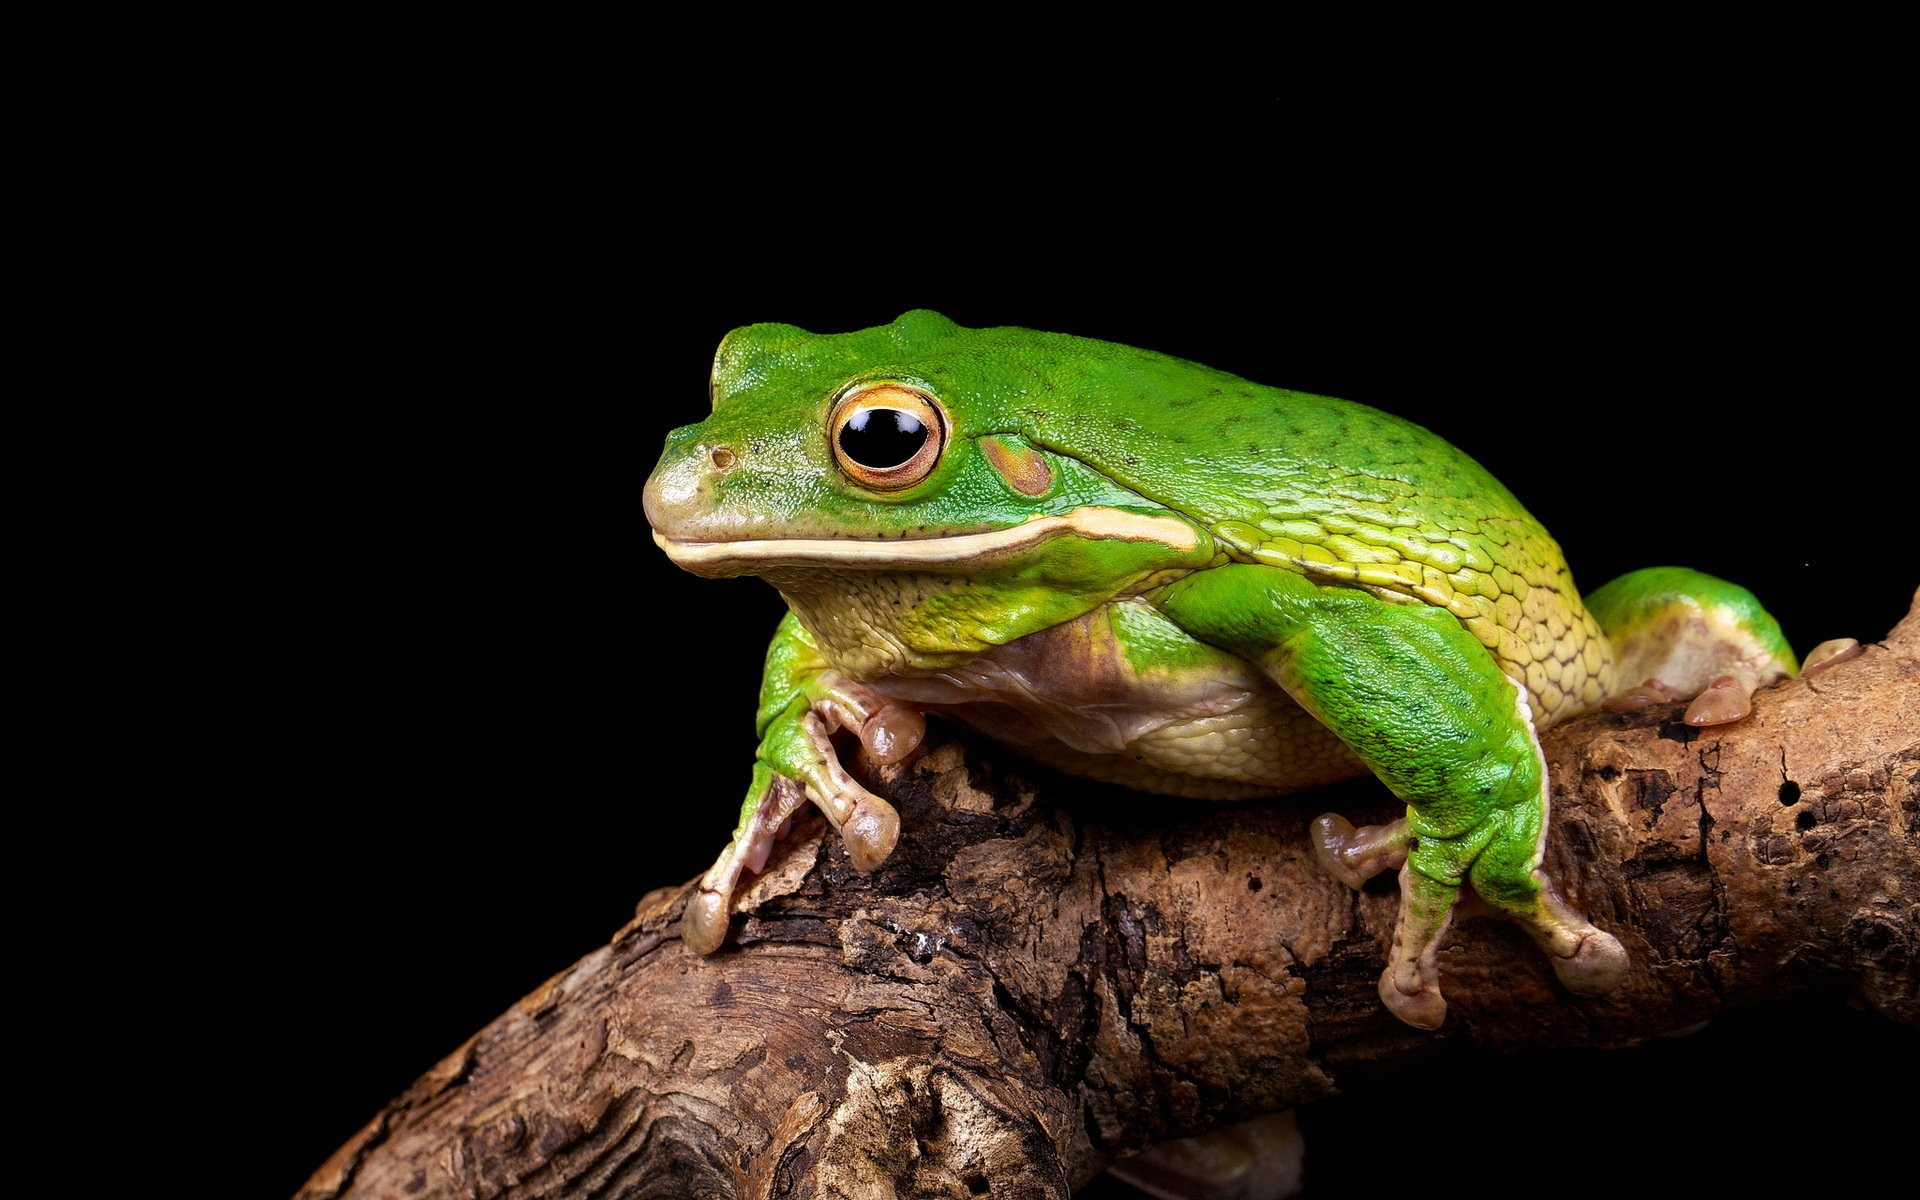 Frog Full HD Wallpaper and Background Image | 1920x1200 ...